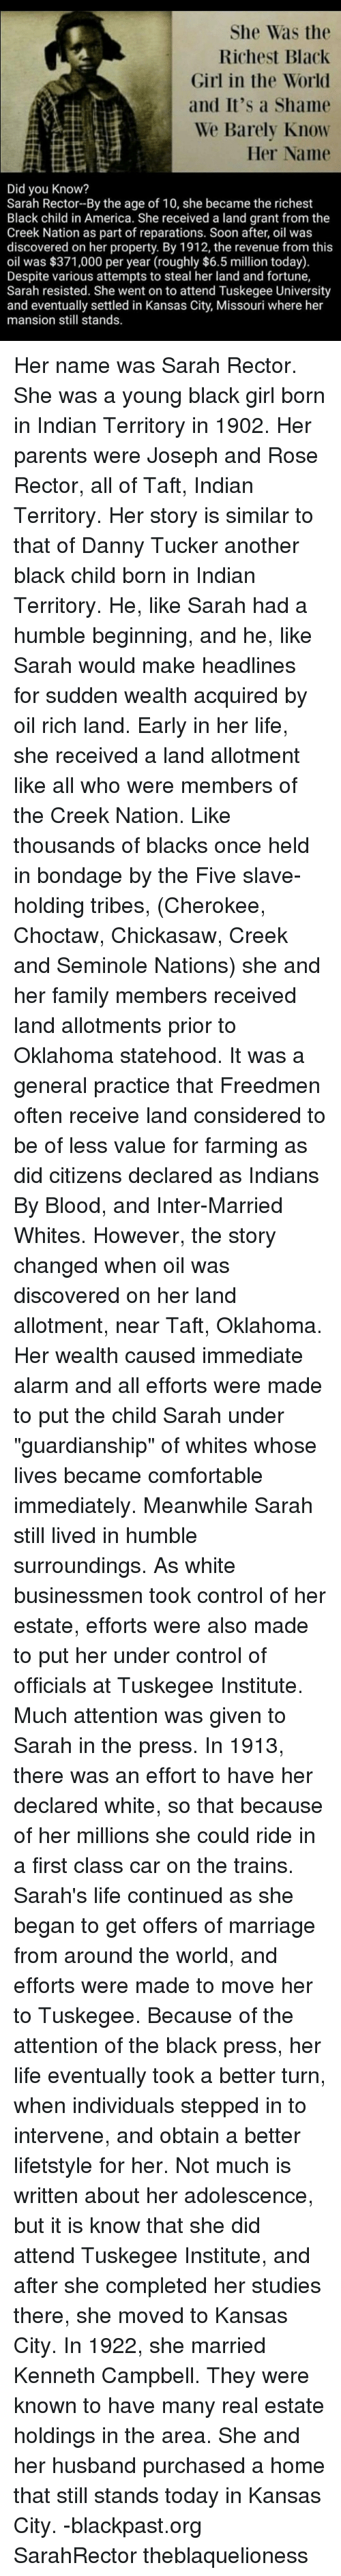 """Farming: She Was the  Richest Black  Girl in the World  and It's a Shame  We Barely Know  Her Name  Did you Know?  Sarah Rector-By the age of 10, she became the richest  Black child in America. She received a land grant from the  Creek Nation as part of reparations. Soon after, oil was  discovered on her property. By 1912, the revenue from this  oil was $371,000 per year (roughly $6.5 million today).  Despite various attempts to steal her land and fortune,  Sarah resisted. She went on to attend Tuskegee University  and eventually settled in Kansas City, Missouri where her  mansion still stands. Her name was Sarah Rector. She was a young black girl born in Indian Territory in 1902. Her parents were Joseph and Rose Rector, all of Taft, Indian Territory. Her story is similar to that of Danny Tucker another black child born in Indian Territory. He, like Sarah had a humble beginning, and he, like Sarah would make headlines for sudden wealth acquired by oil rich land. Early in her life, she received a land allotment like all who were members of the Creek Nation. Like thousands of blacks once held in bondage by the Five slave-holding tribes, (Cherokee, Choctaw, Chickasaw, Creek and Seminole Nations) she and her family members received land allotments prior to Oklahoma statehood. It was a general practice that Freedmen often receive land considered to be of less value for farming as did citizens declared as Indians By Blood, and Inter-Married Whites. However, the story changed when oil was discovered on her land allotment, near Taft, Oklahoma. Her wealth caused immediate alarm and all efforts were made to put the child Sarah under """"guardianship"""" of whites whose lives became comfortable immediately. Meanwhile Sarah still lived in humble surroundings. As white businessmen took control of her estate, efforts were also made to put her under control of officials at Tuskegee Institute. Much attention was given to Sarah in the press. In 1913, there was an effort to have her declar"""